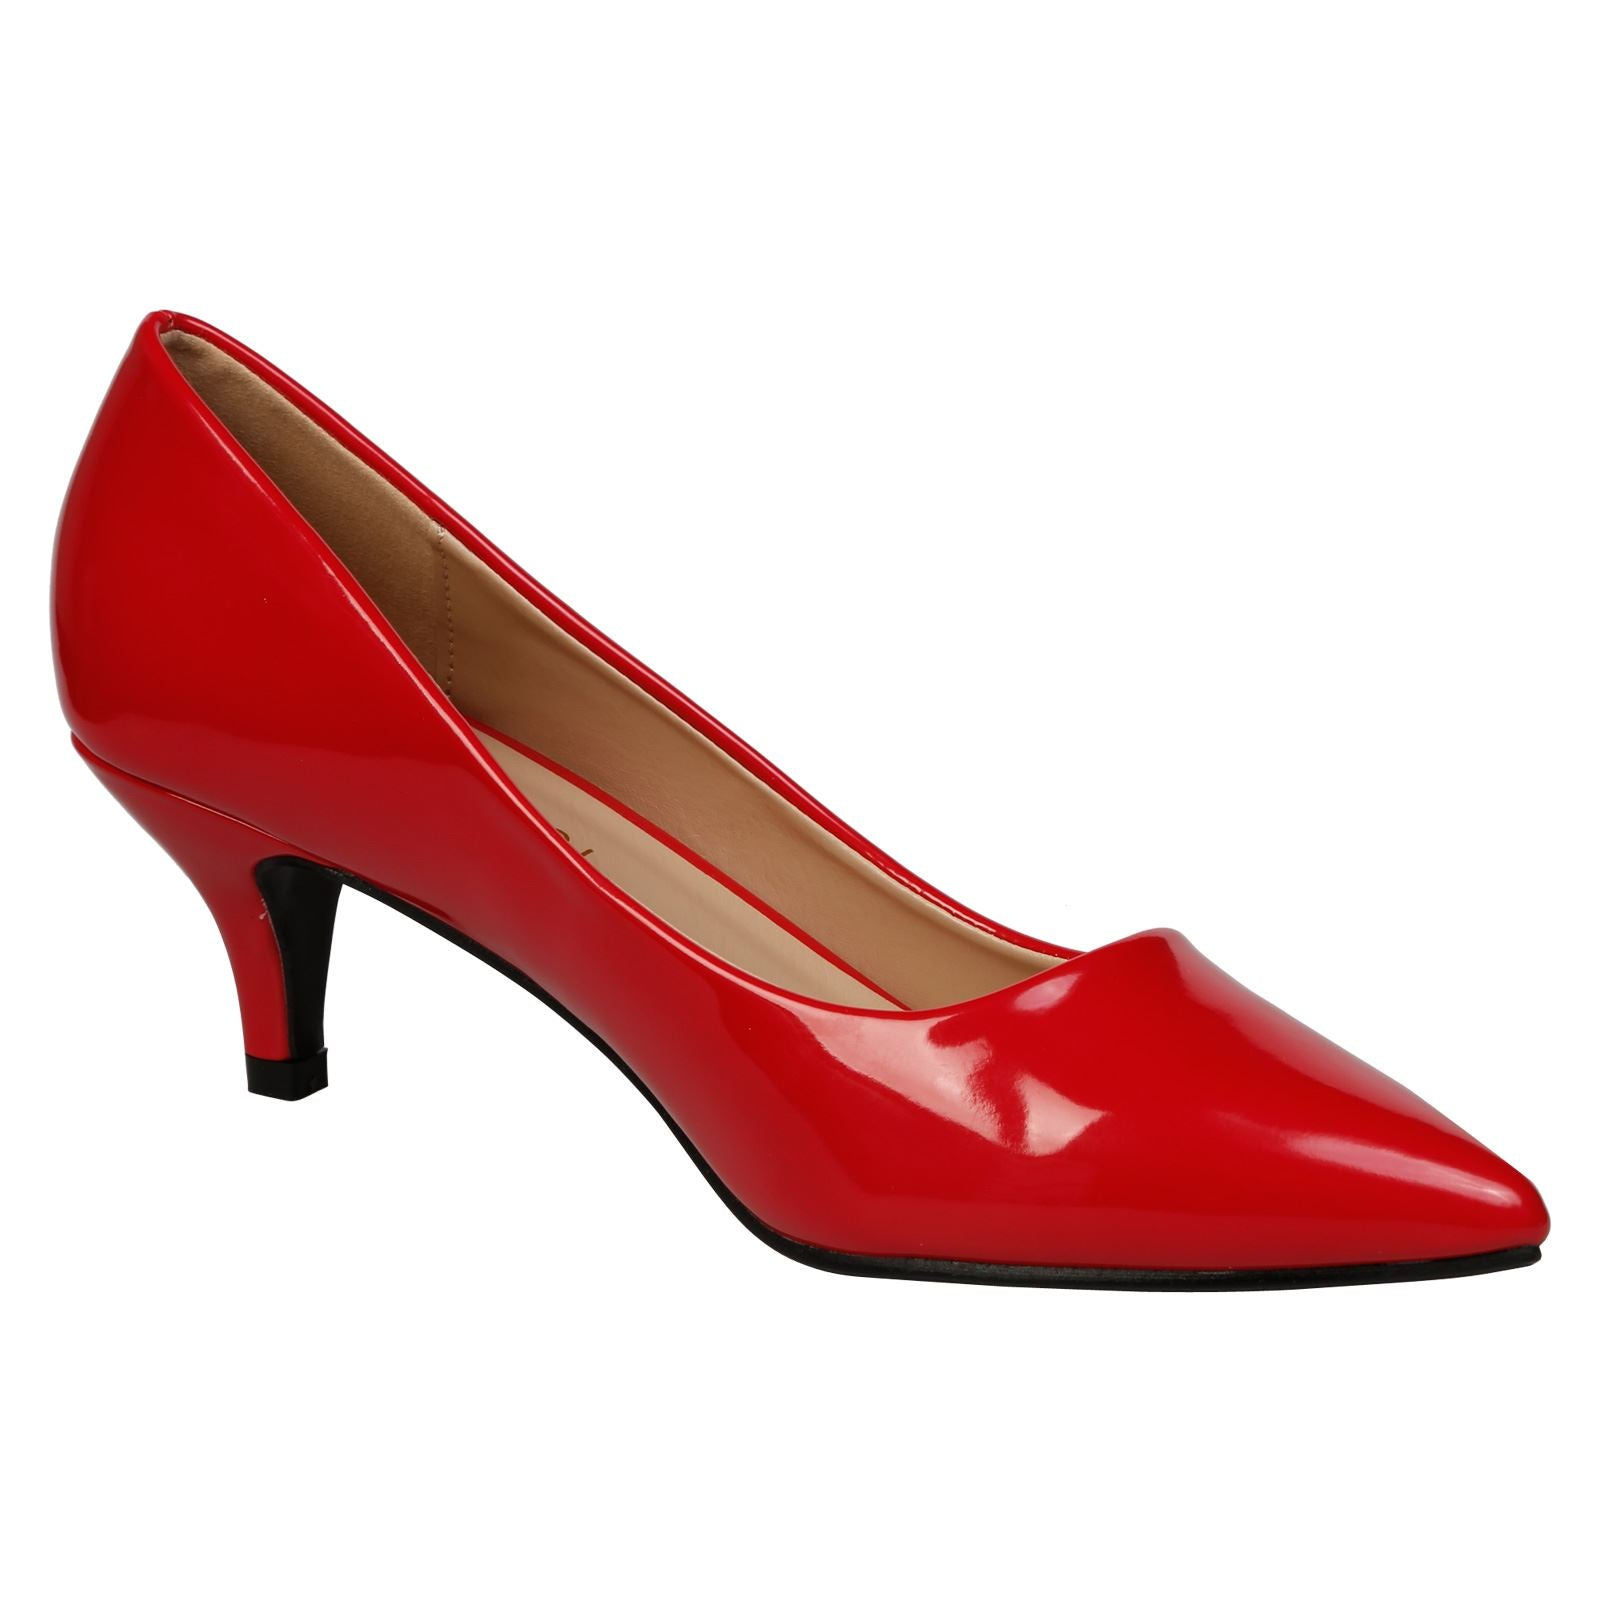 Miranda Kitten Heel Pointed Toe Court Shoes in Red Patent